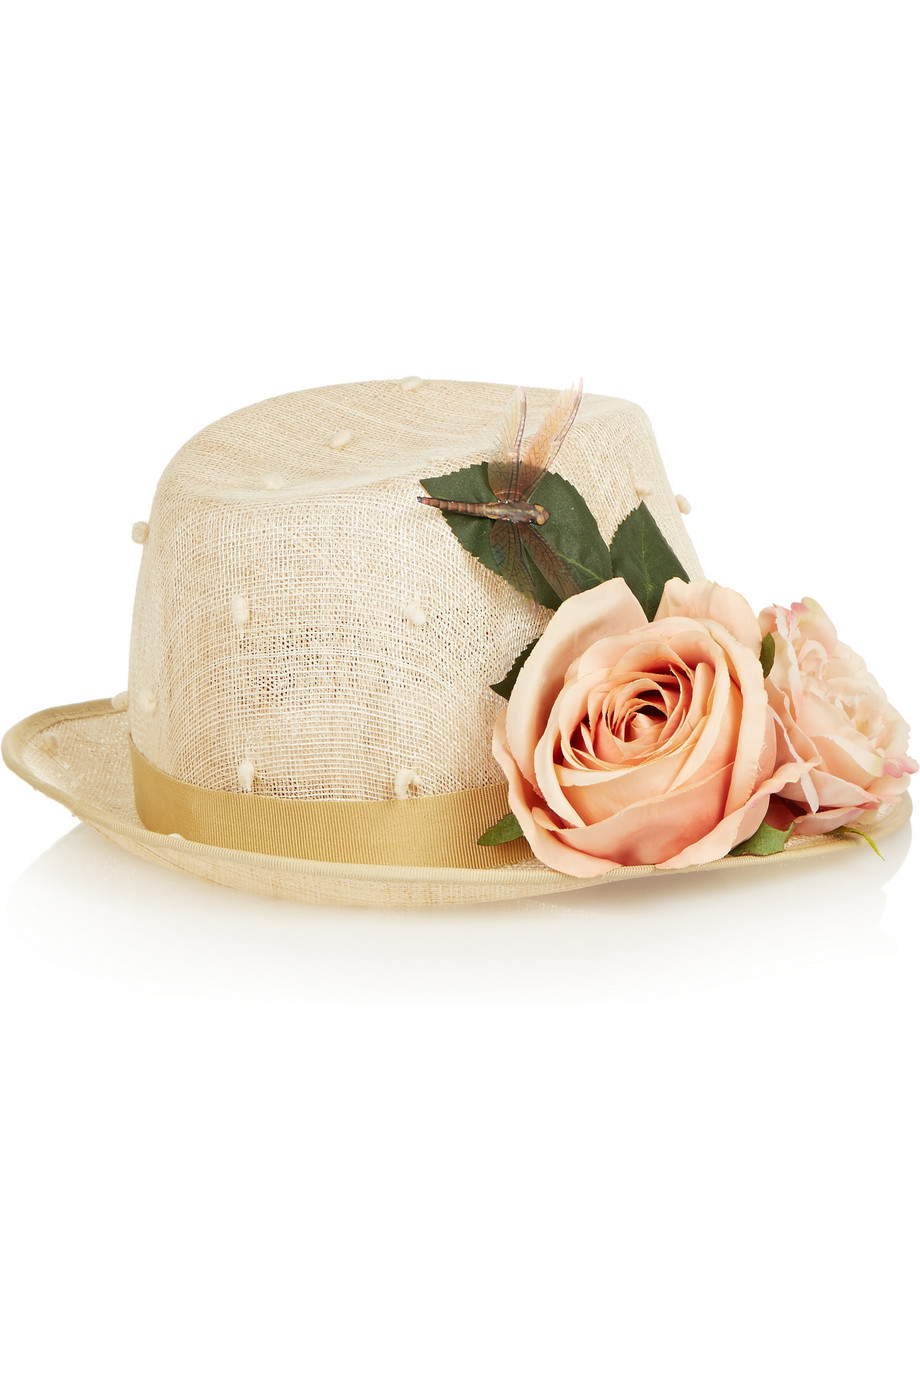 04589ae4 Piers Atkinson Flower-Embellished Sinamay Trilby in Natural - Lyst